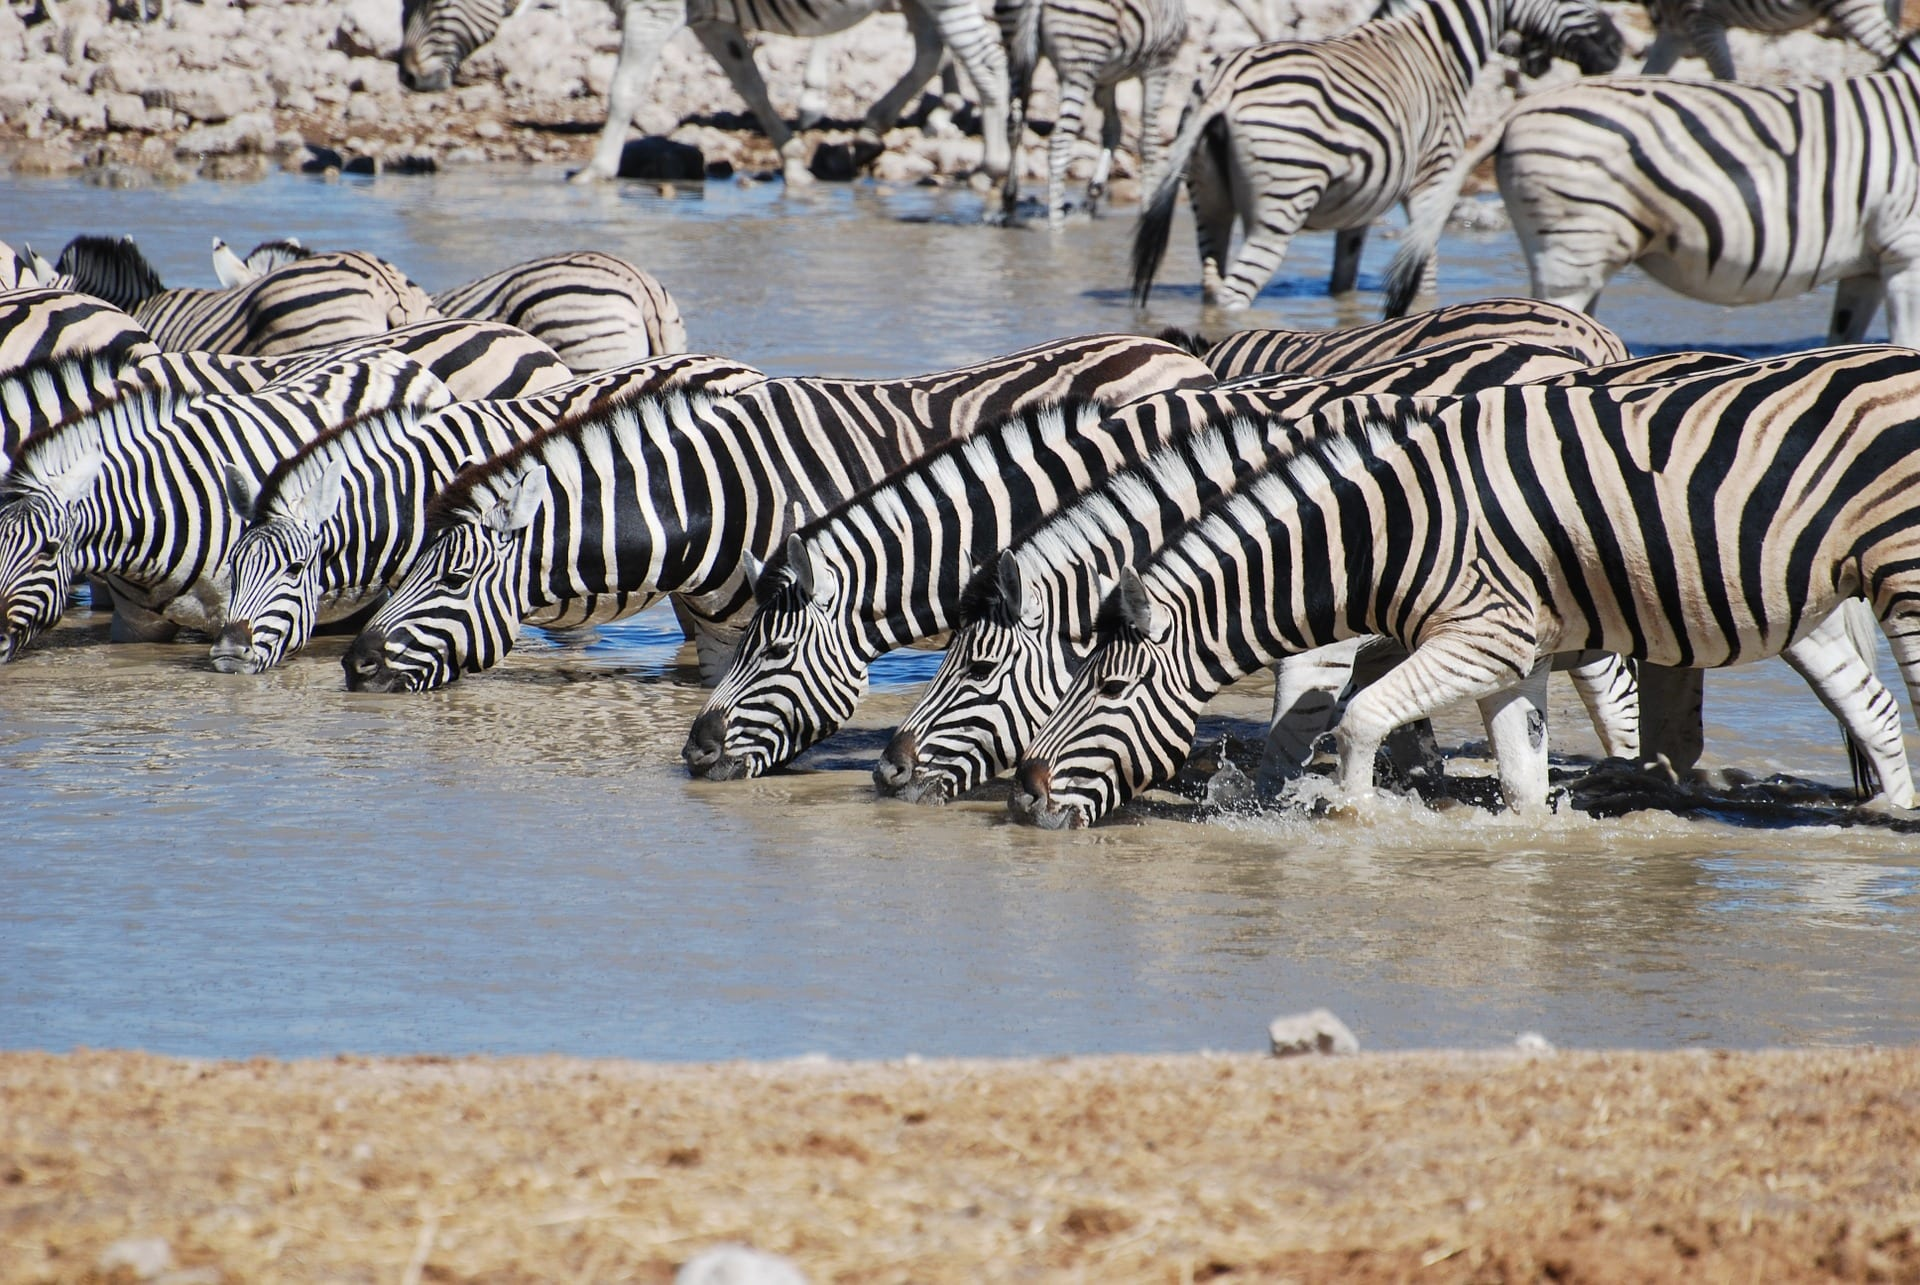 https://pixabay.com/en/zebra-drinking-safari-nature-806302/